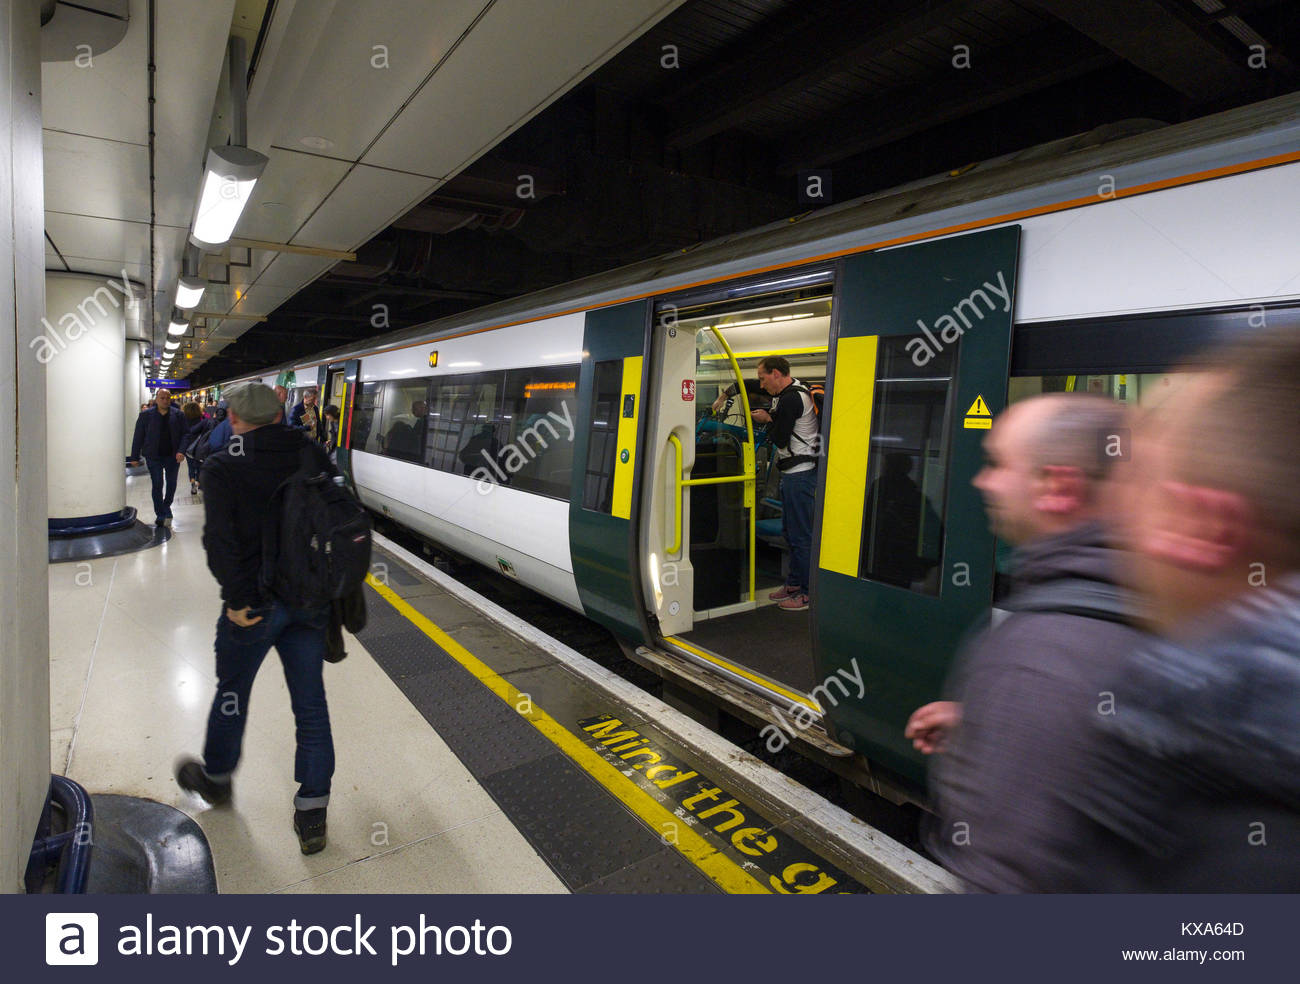 People walking on train platform past train in Victoria Station, City of Westminster, London, England, United Kingdom - Stock Image